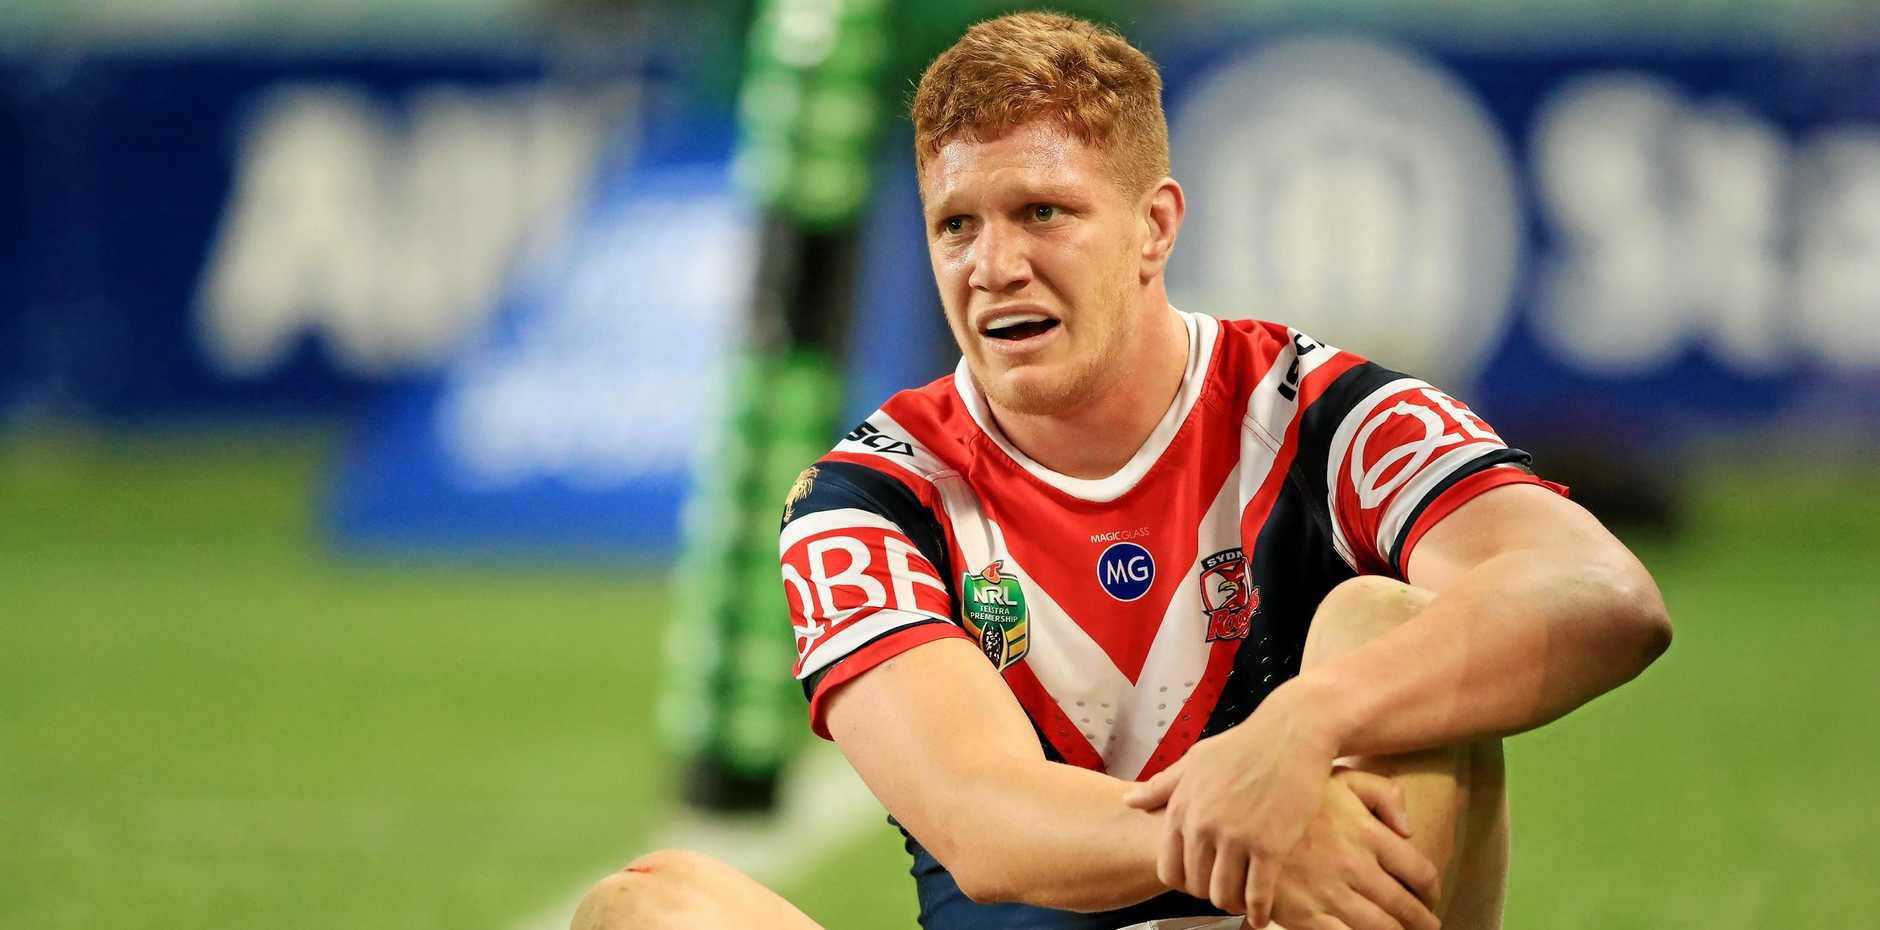 The Roosters' Dylan Napa waits to be taken from the field after aggravating an injury in his team's Friday night clash with Penrith.